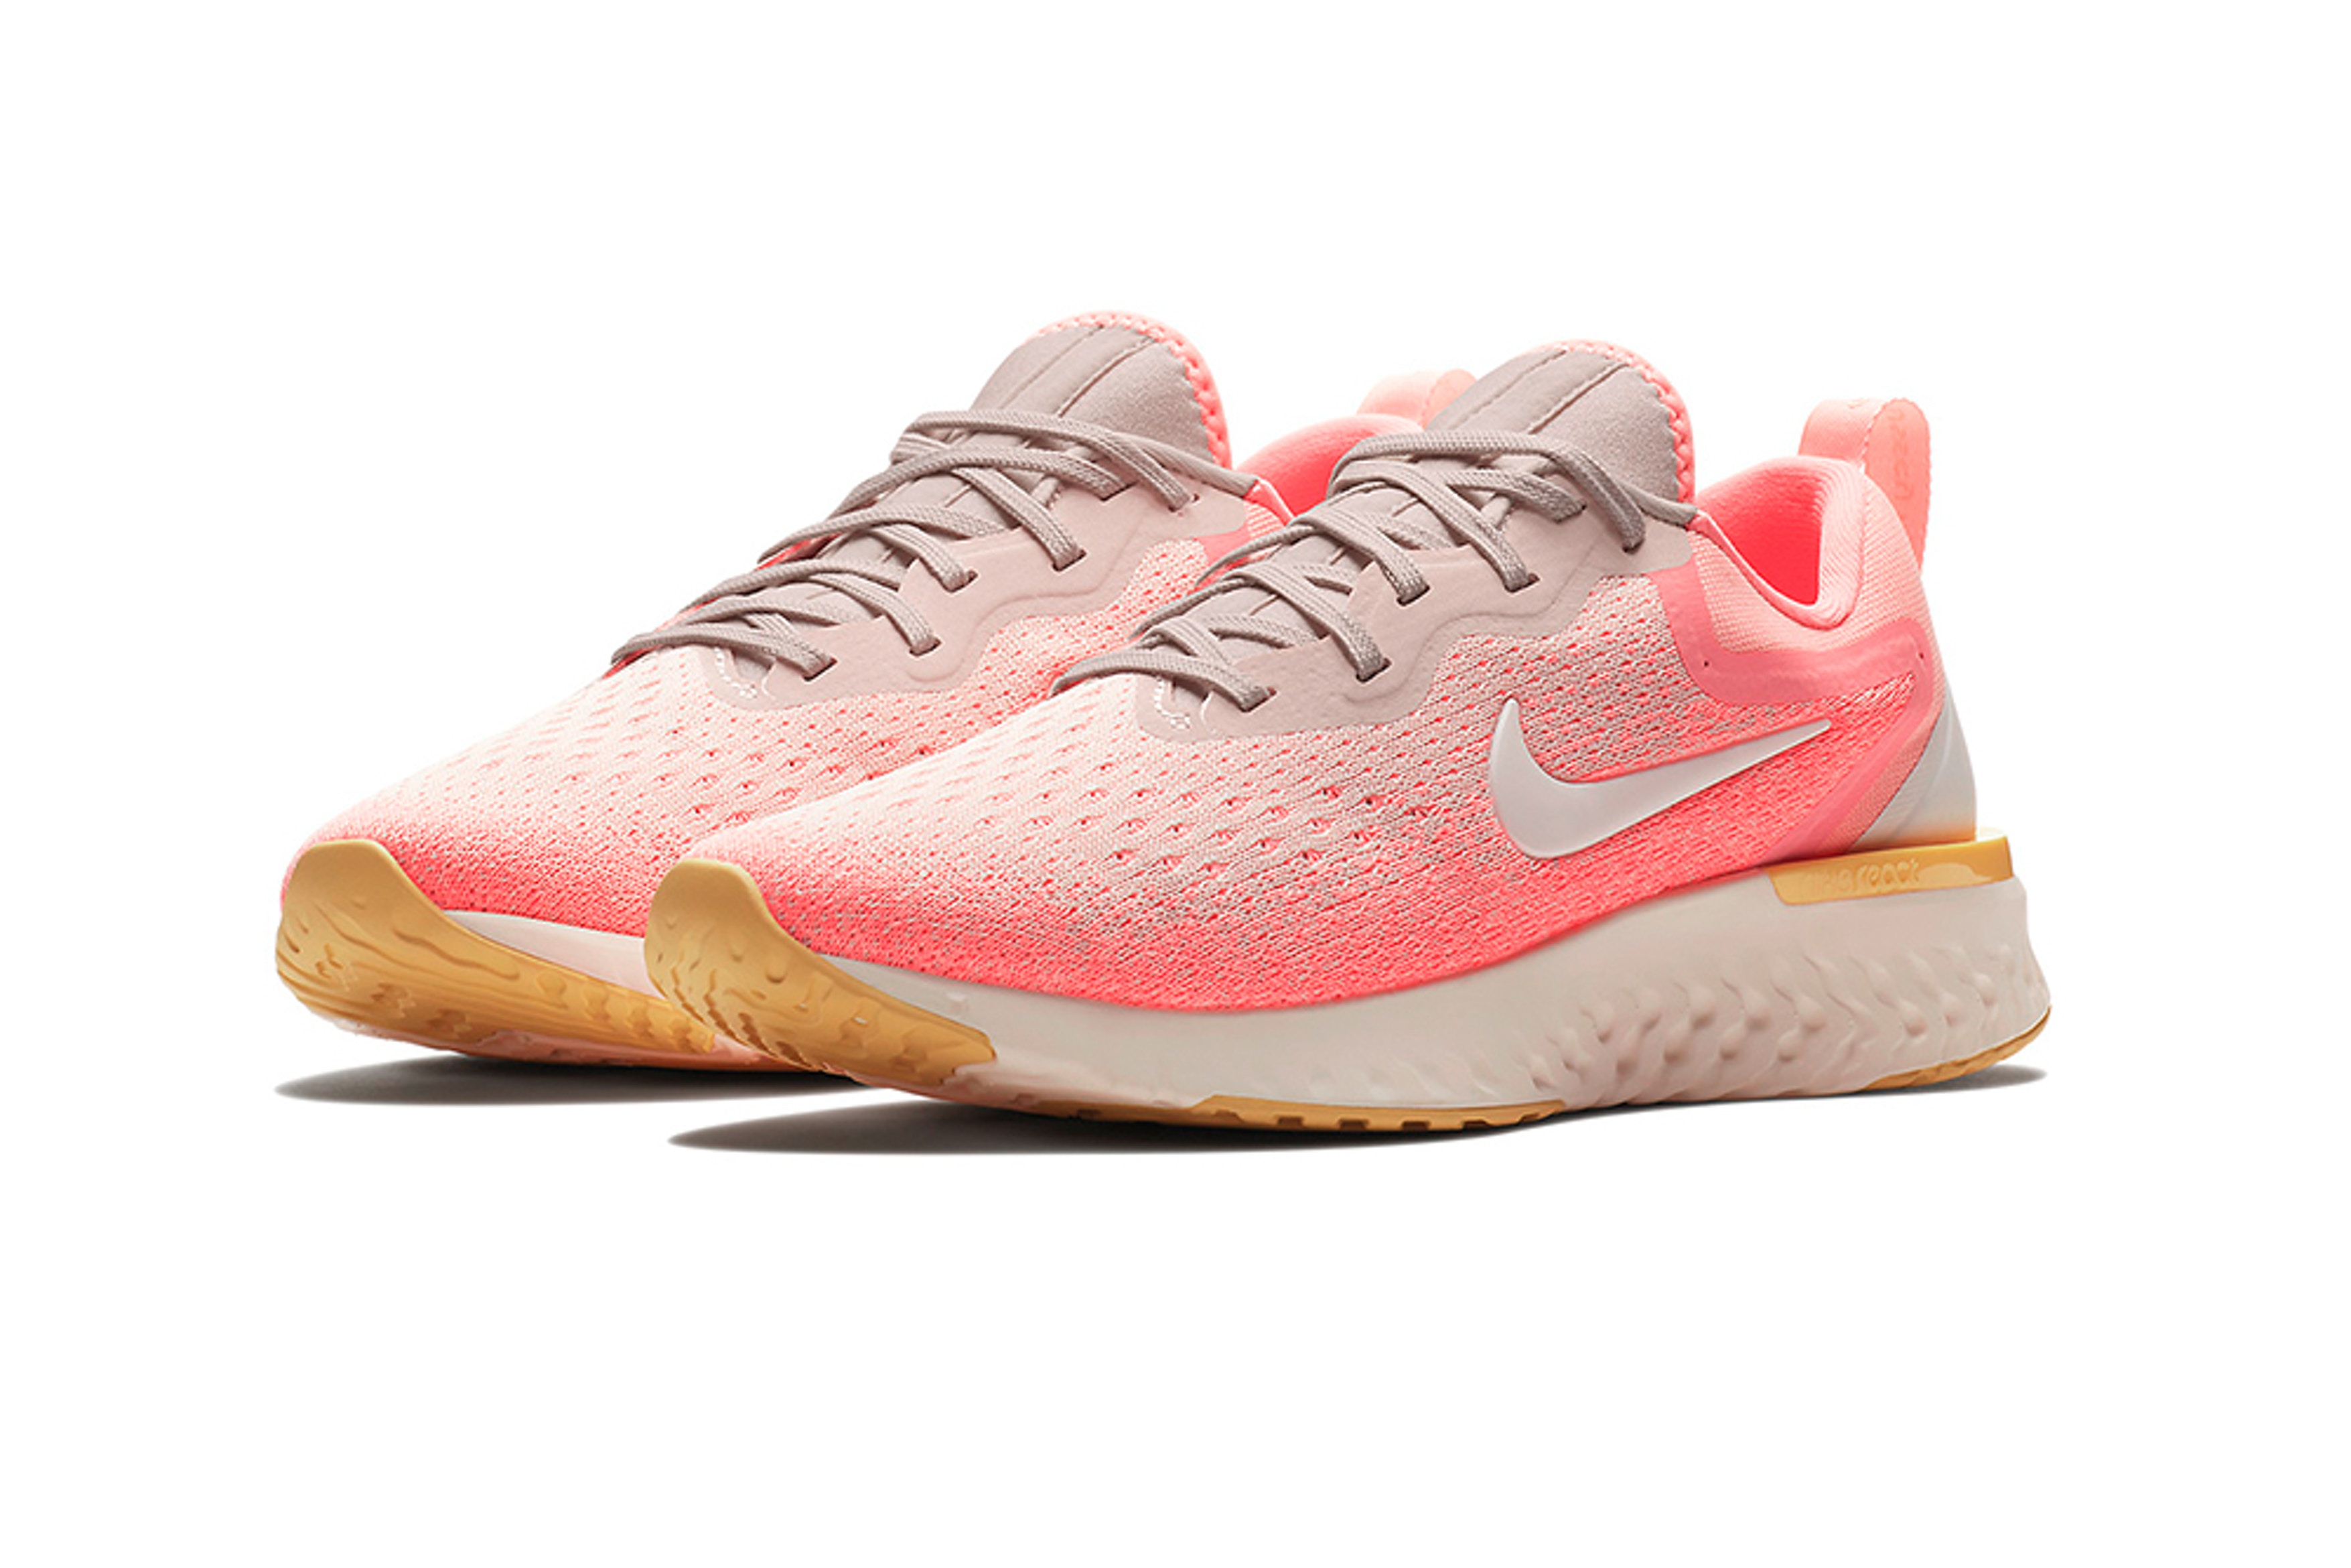 45e23678afebe Nike Odyssey React. Nike Odyssey React. Following the recent introduction  ...